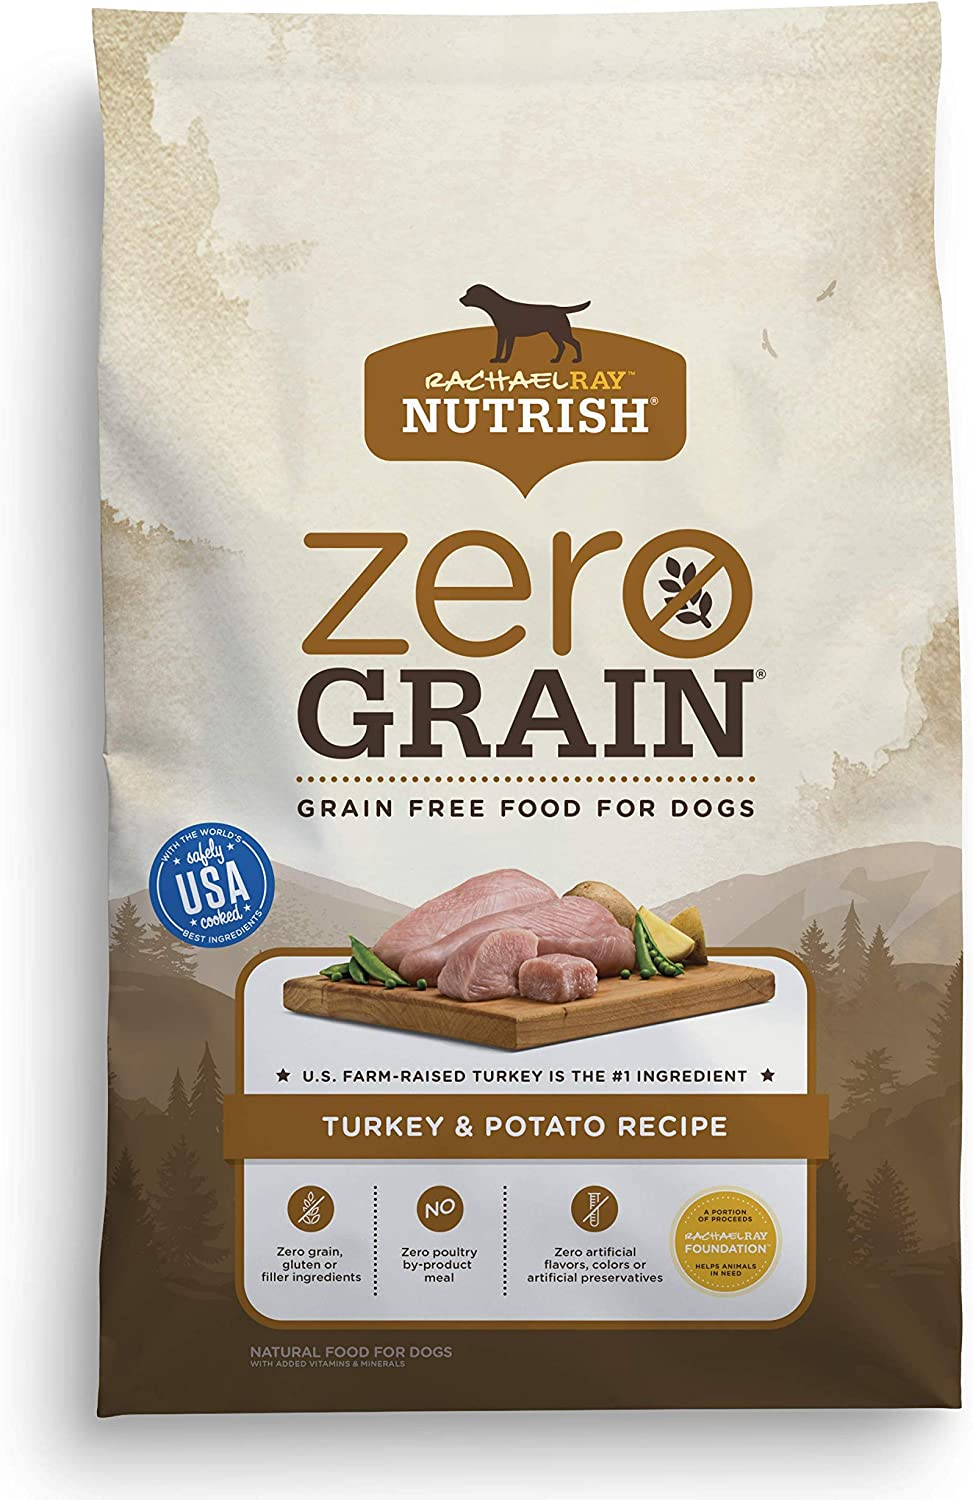 5. Rachael Ray Nutrish Zero Grain Grain-Free Dry Dog Food